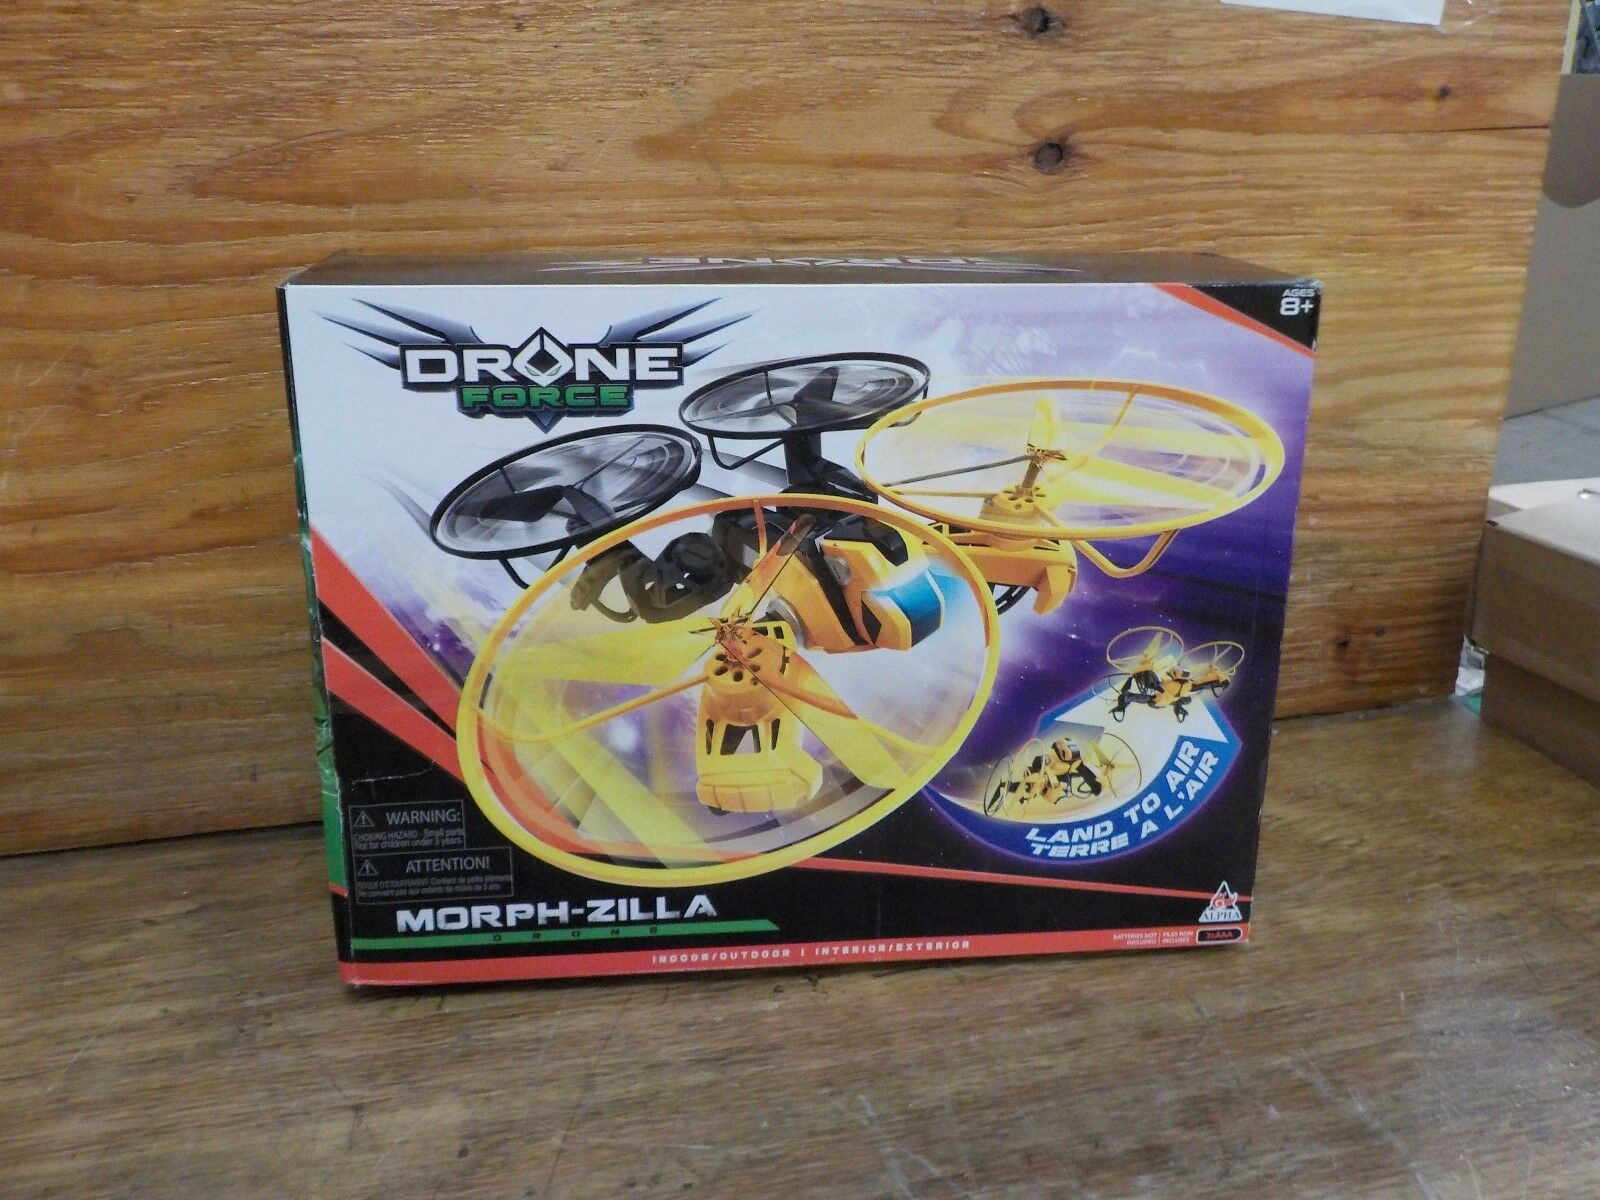 Drone Drone Drone Force Morph-Zilla-2.4Ghz Indoor Outdoor Drone Helicopter giocattolo with Le to e3a164